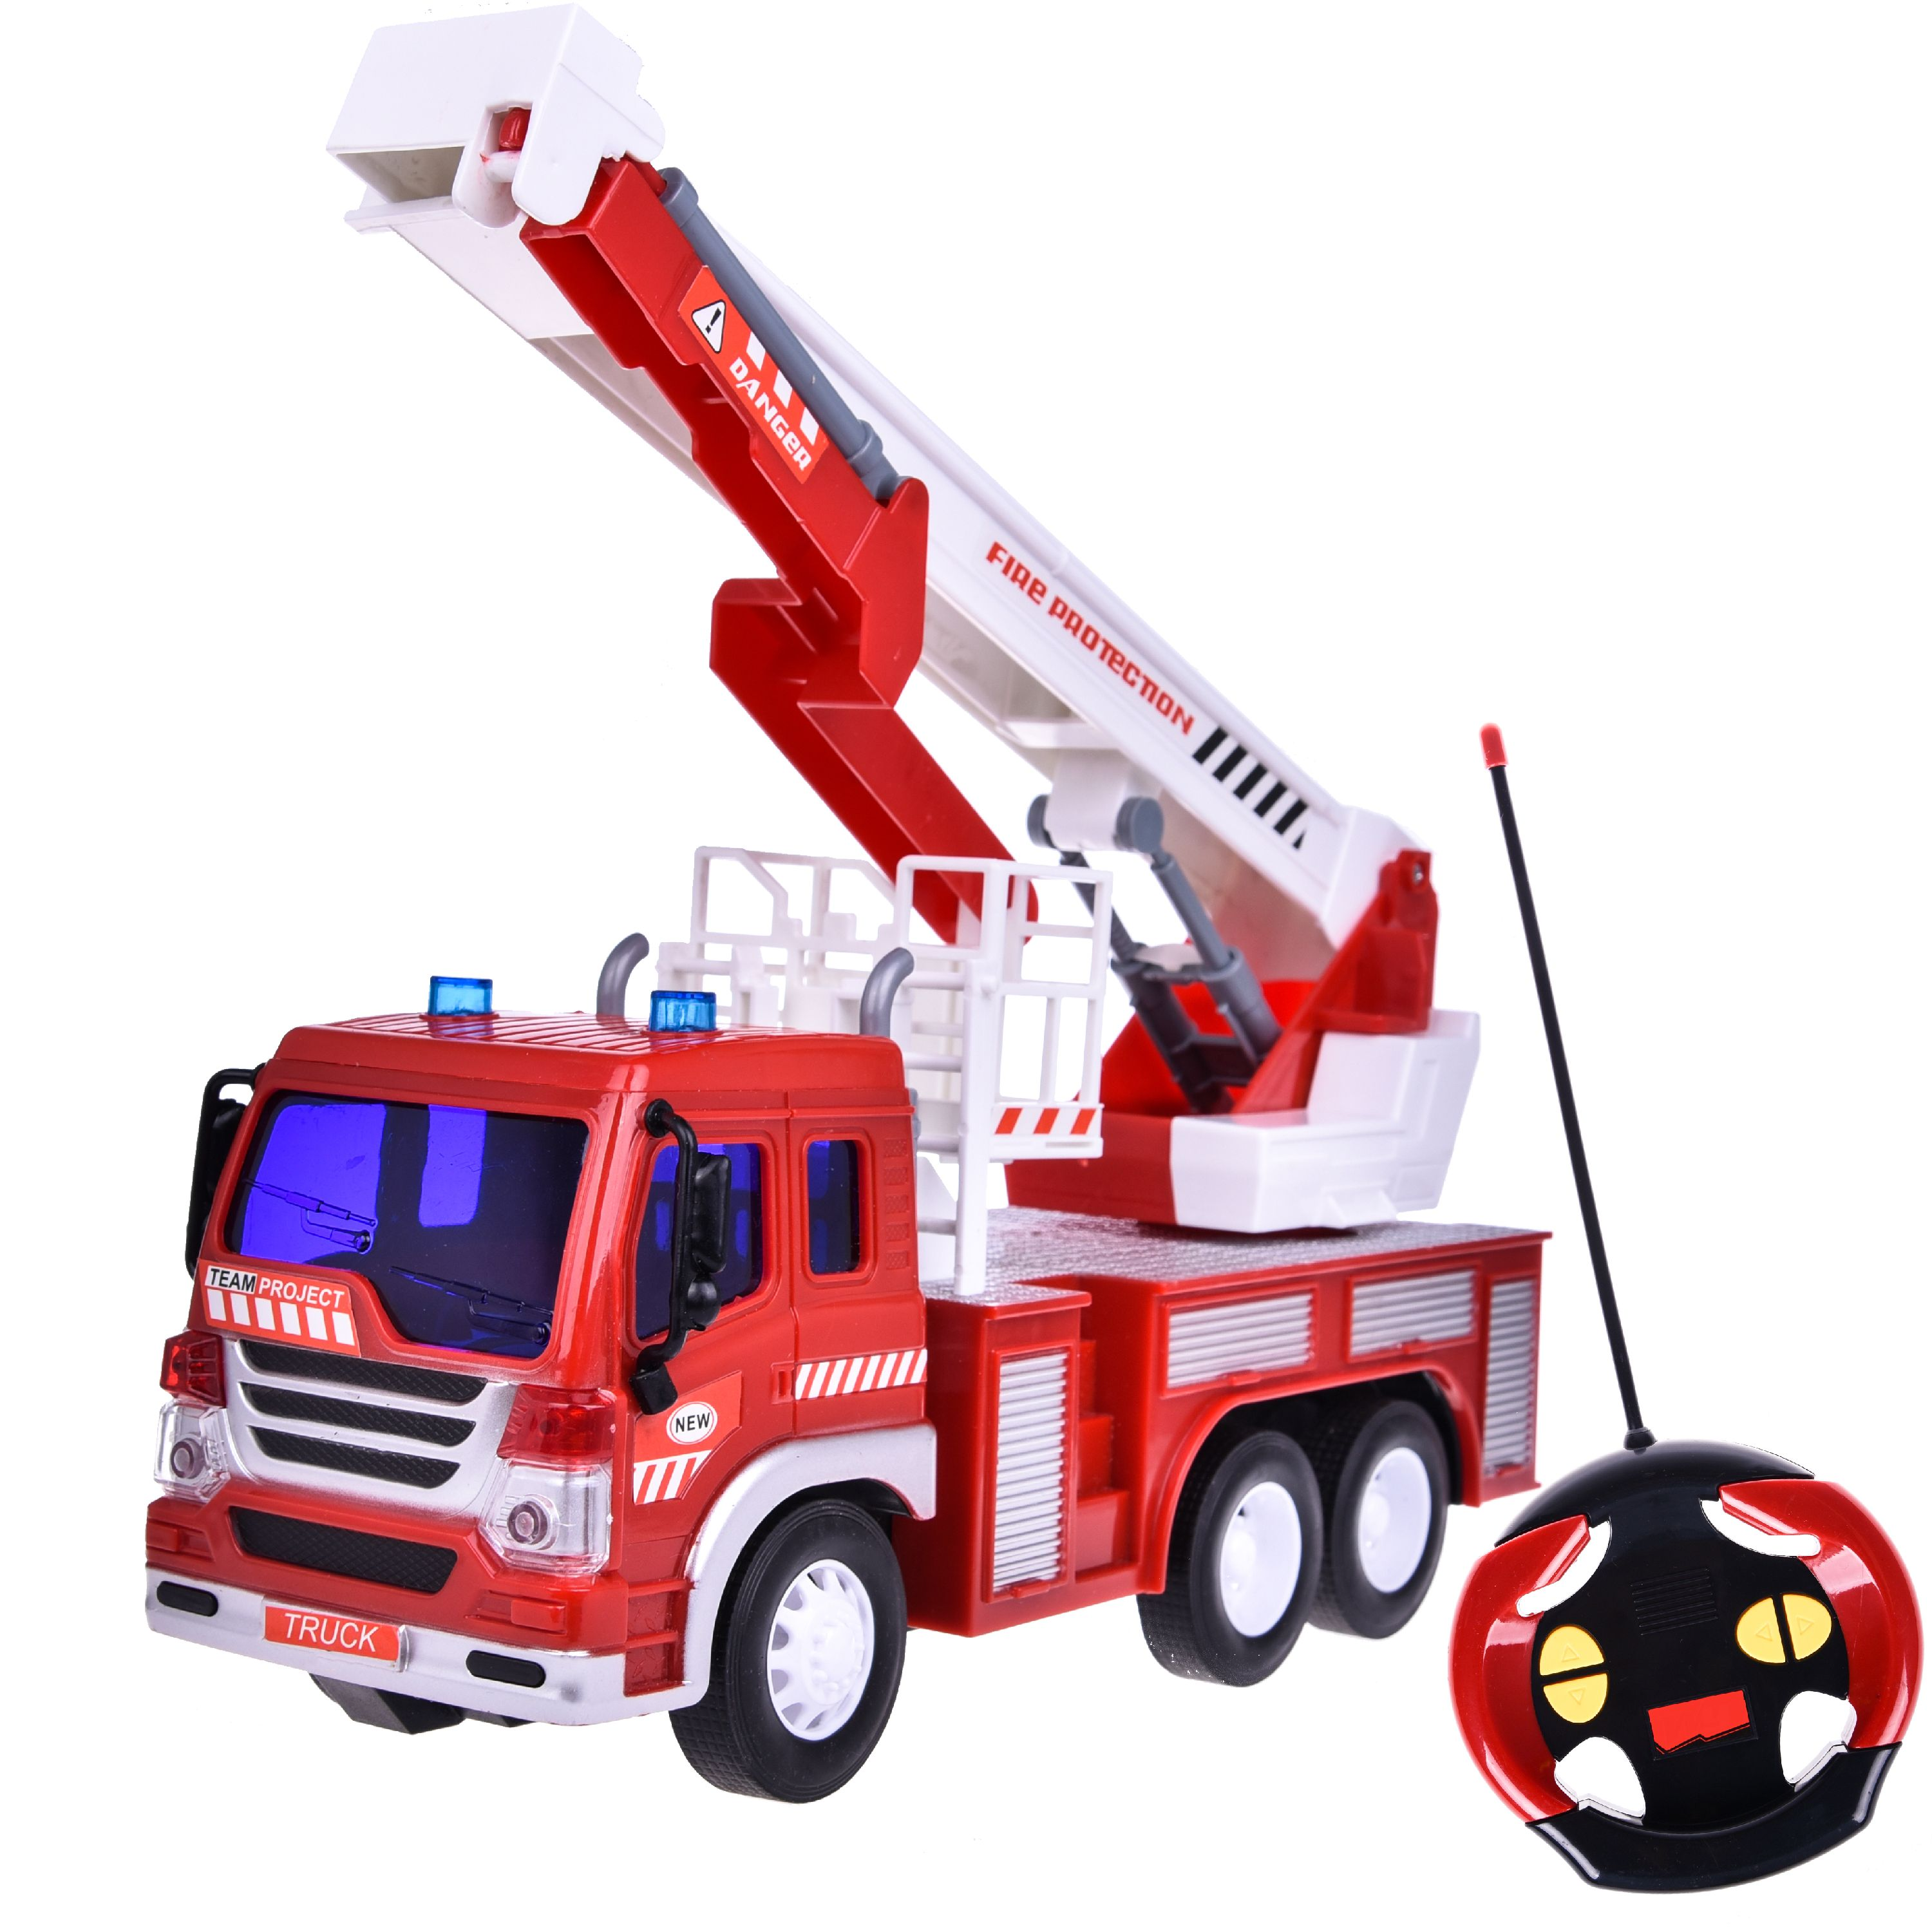 Remote Control Fire Truck Toy for Boys Fire Rescue Fighting Vehicle Learning Education... by Fun Little Toy